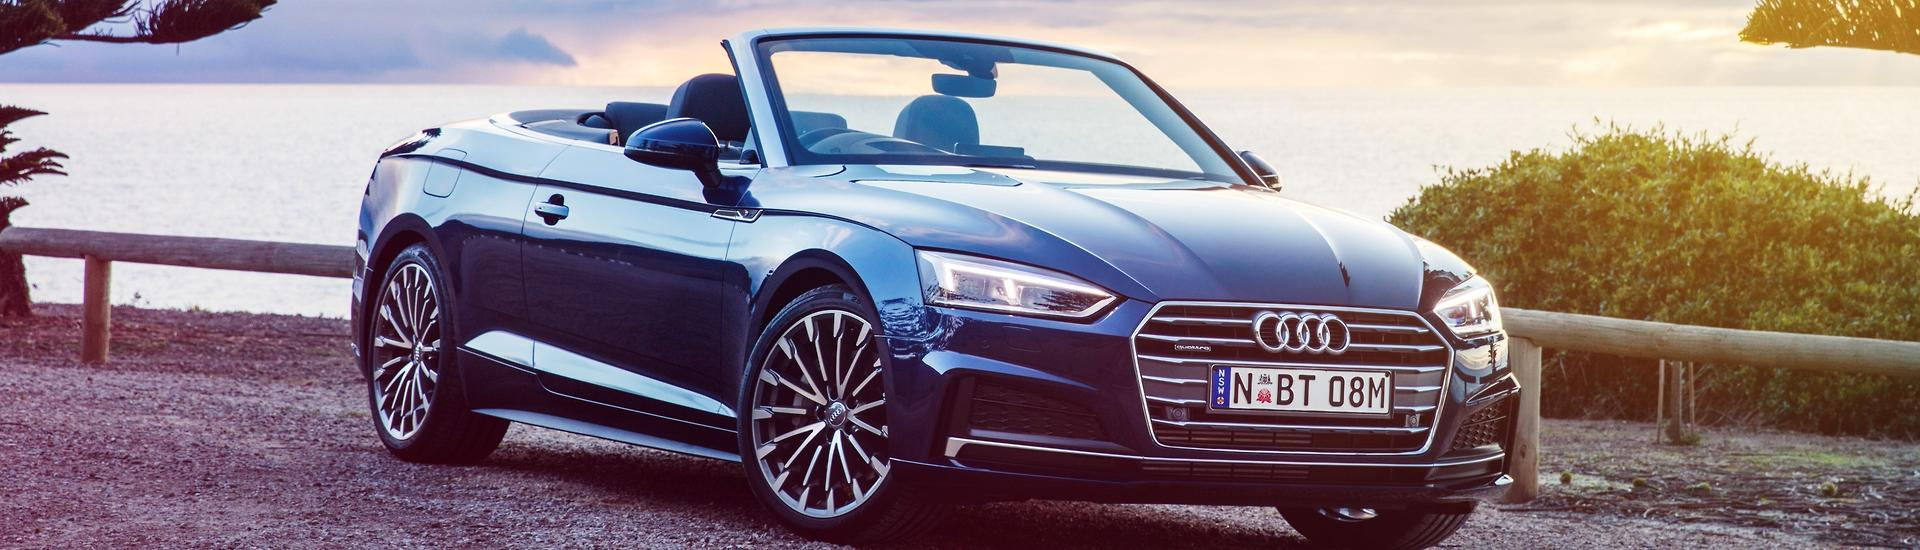 New Audi A Convertible Cars For Sale Carsalescomau - Audi convertible for sale